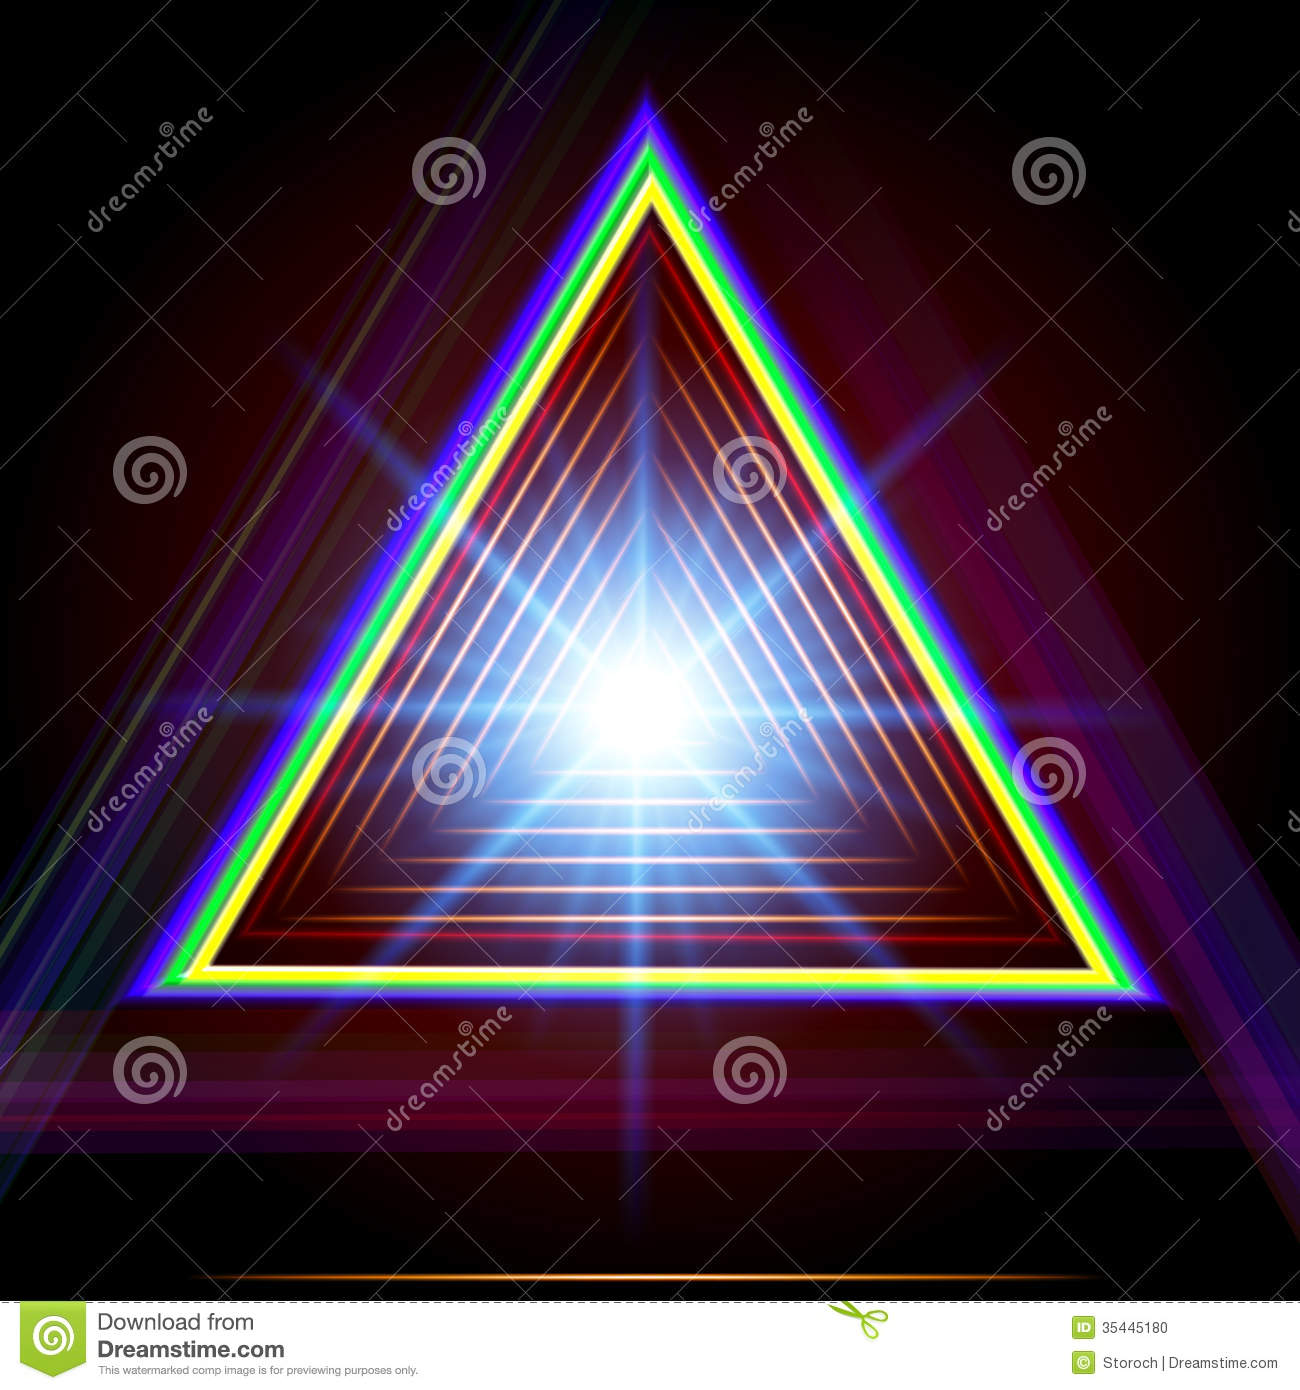 Matrix 3d Wallpaper Free Download Abstract Triangle Techno Background Stock Photo Image